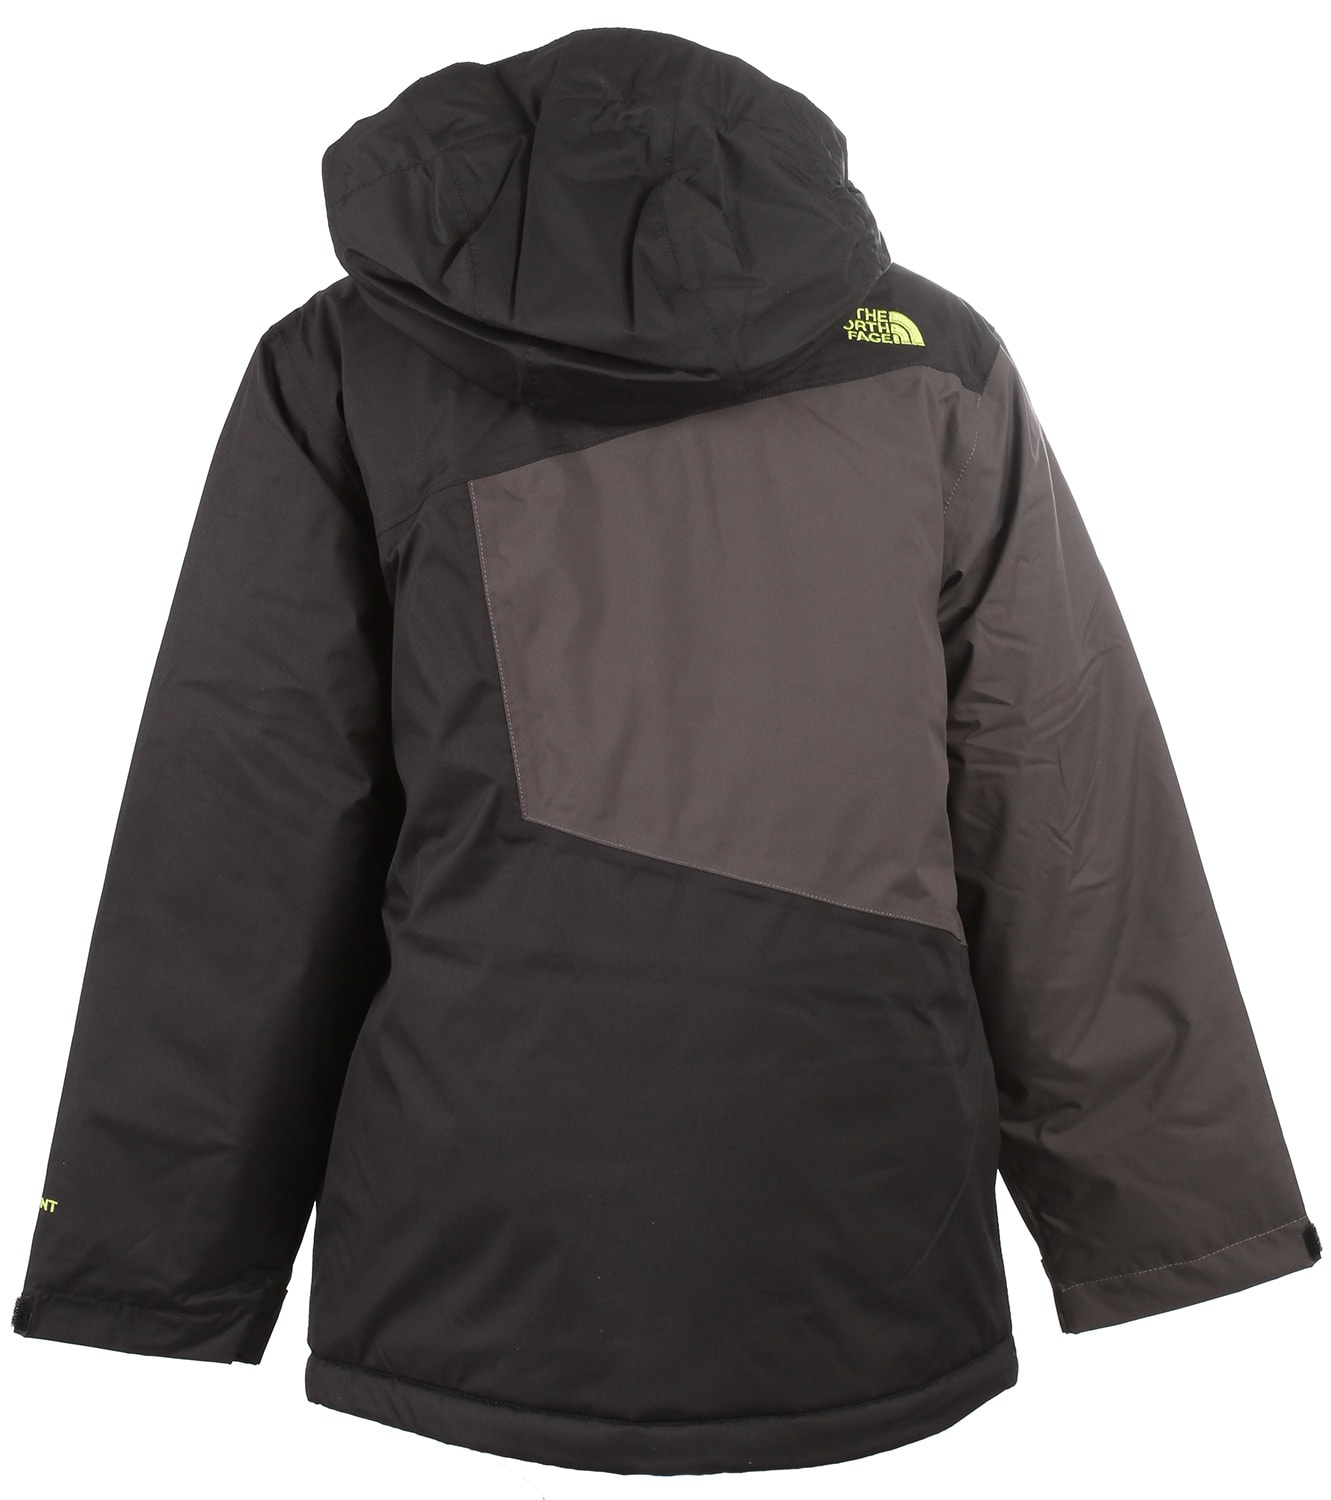 a21b8837c The North Face Gonzo Insulated Ski Jacket - Kids